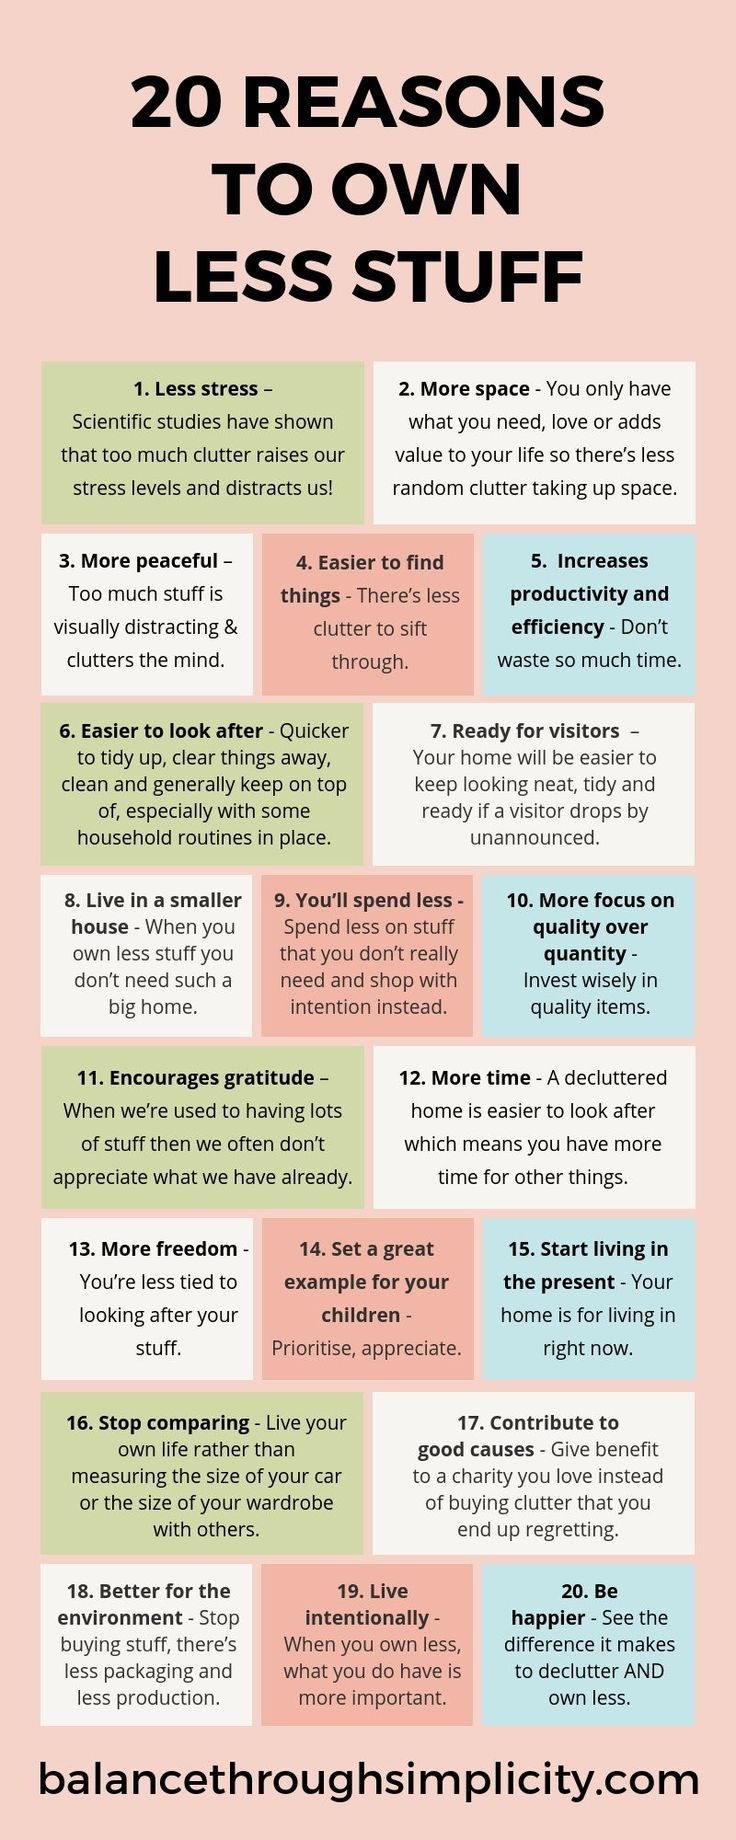 20 reasons to own less stuff - Balance Through Simplicity